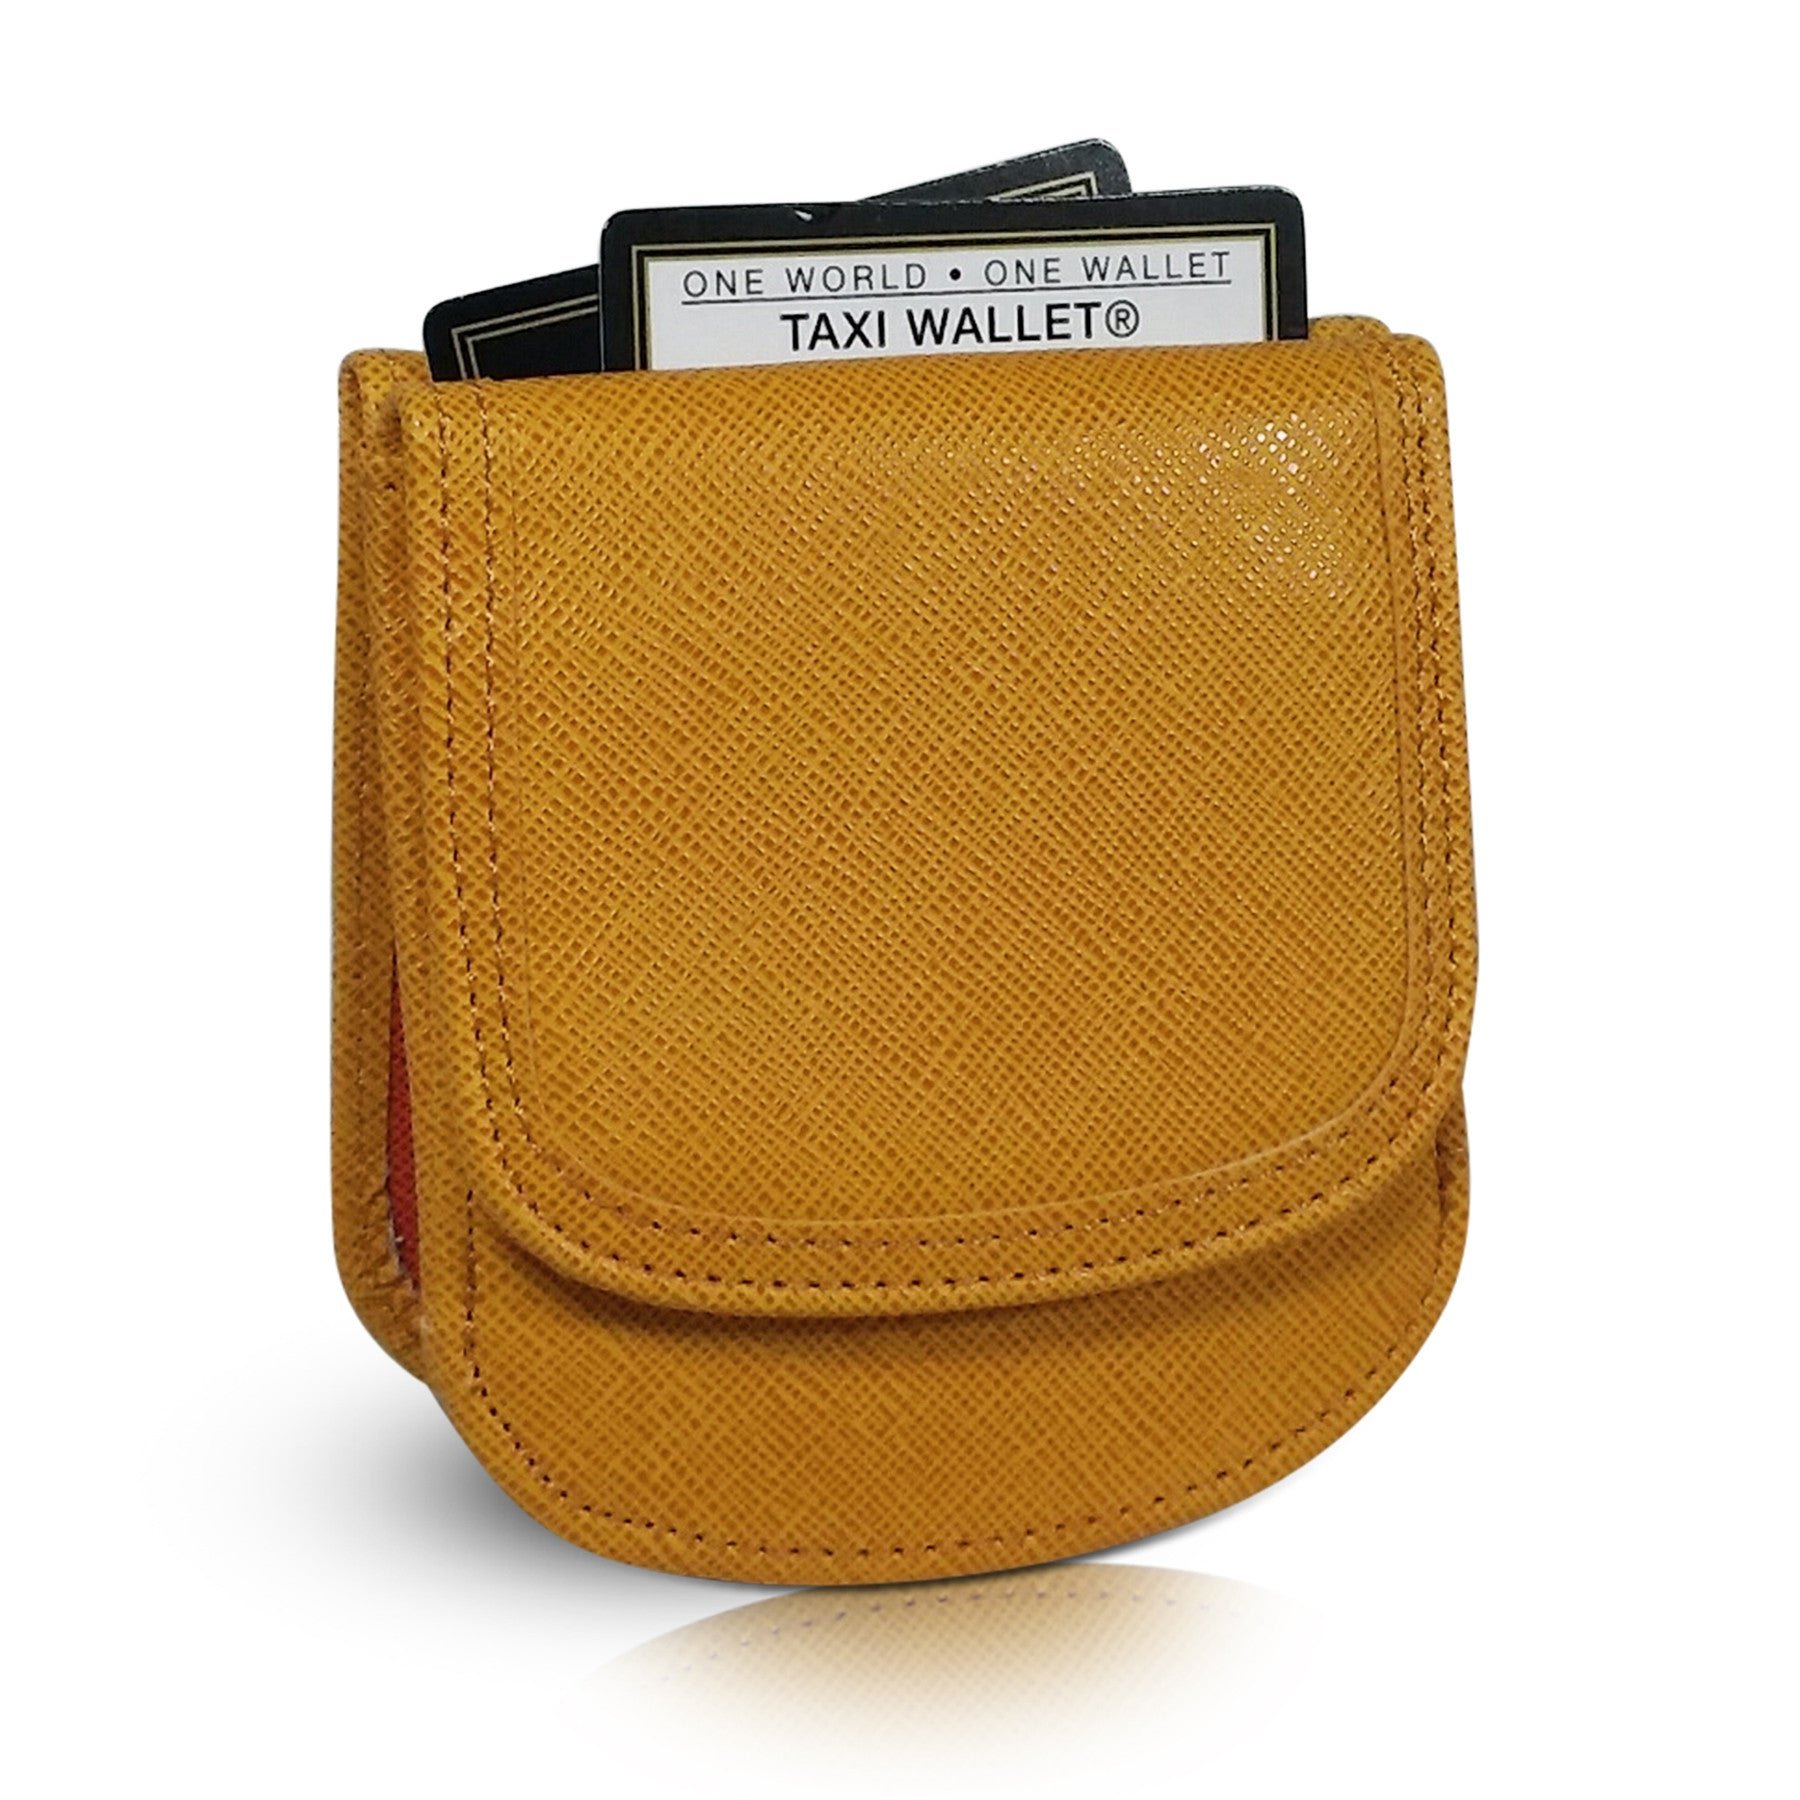 Vegan Leather Taxi Wallet - Compact Coin Wallet for Men and Women - Marigold